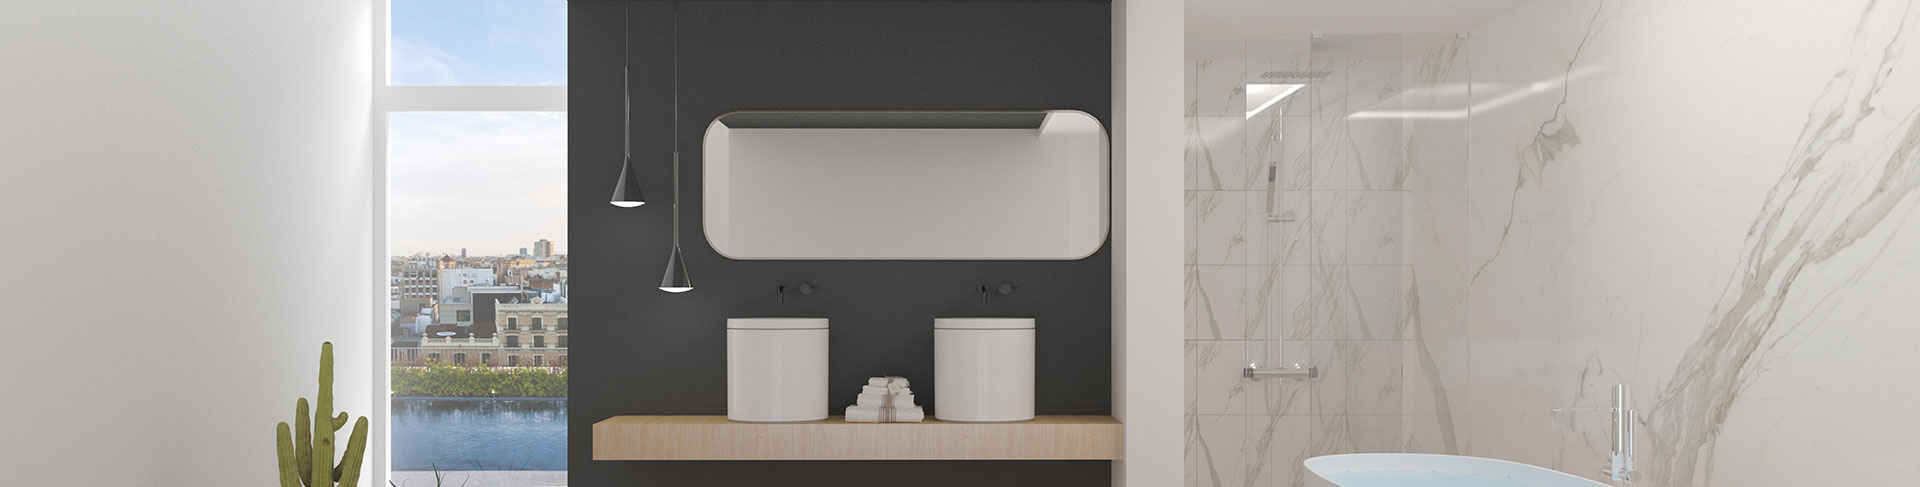 600mm Bathroom Mirror